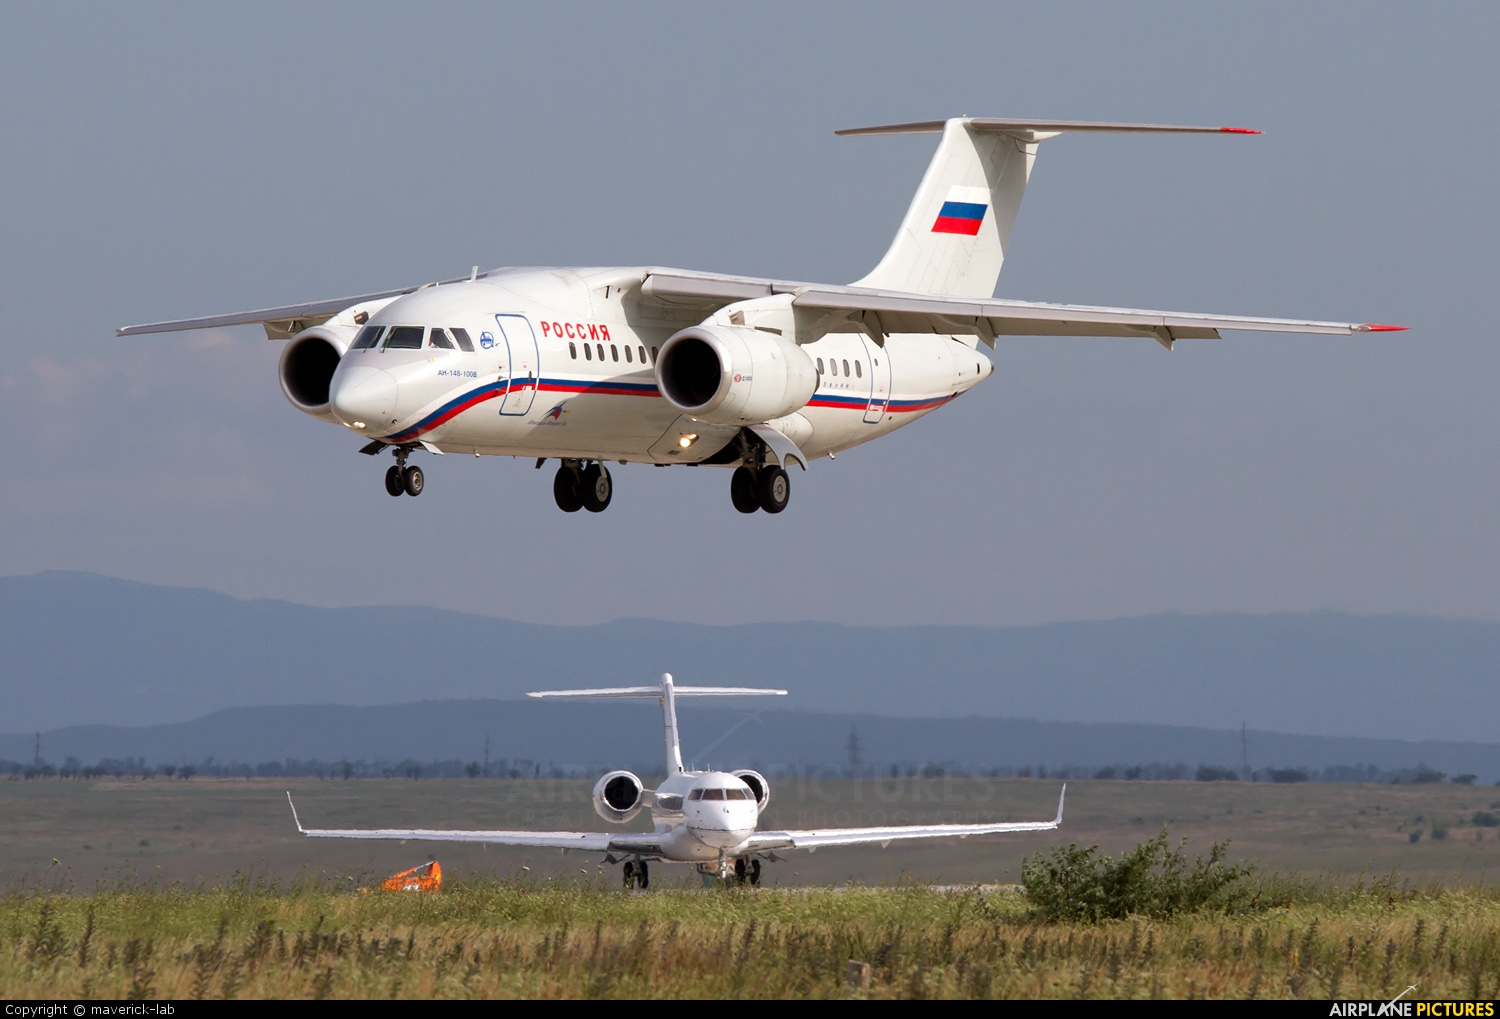 Rossiya RA-61702 aircraft at Simferopol International Airport (under Russian occupation)